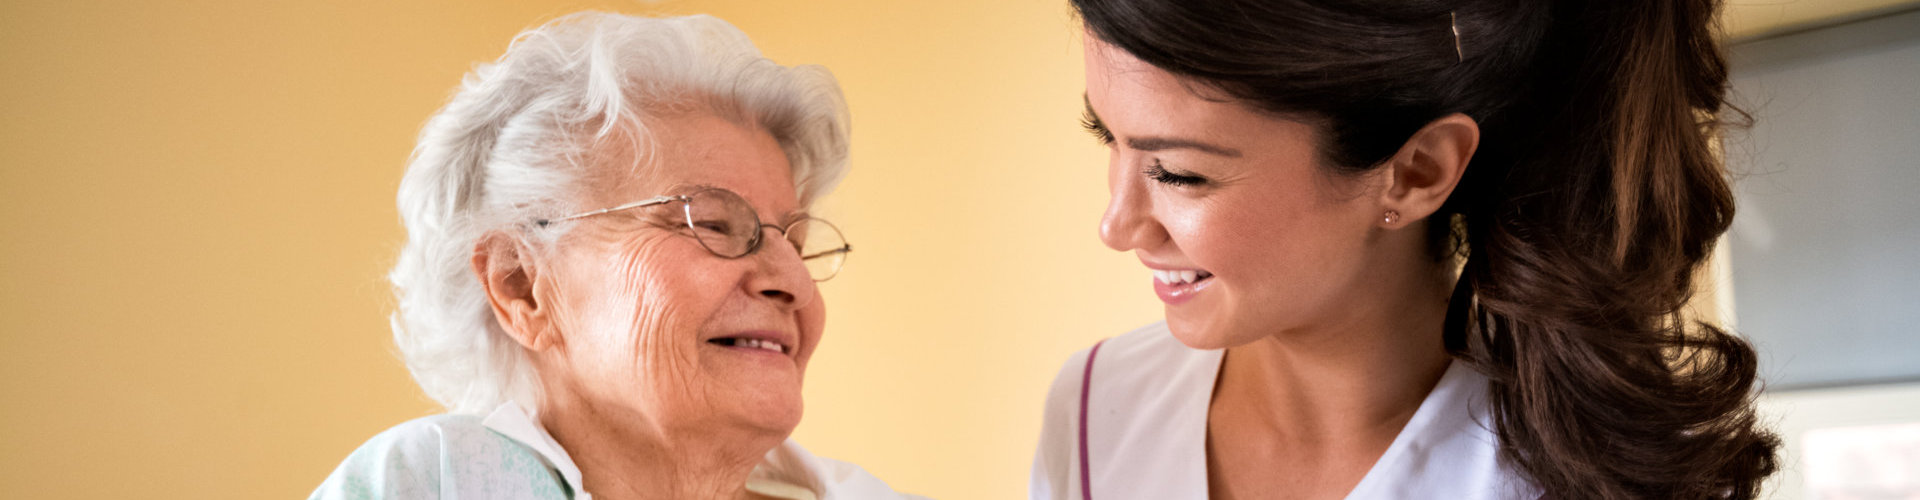 an old lady and a nurse smiling at each other